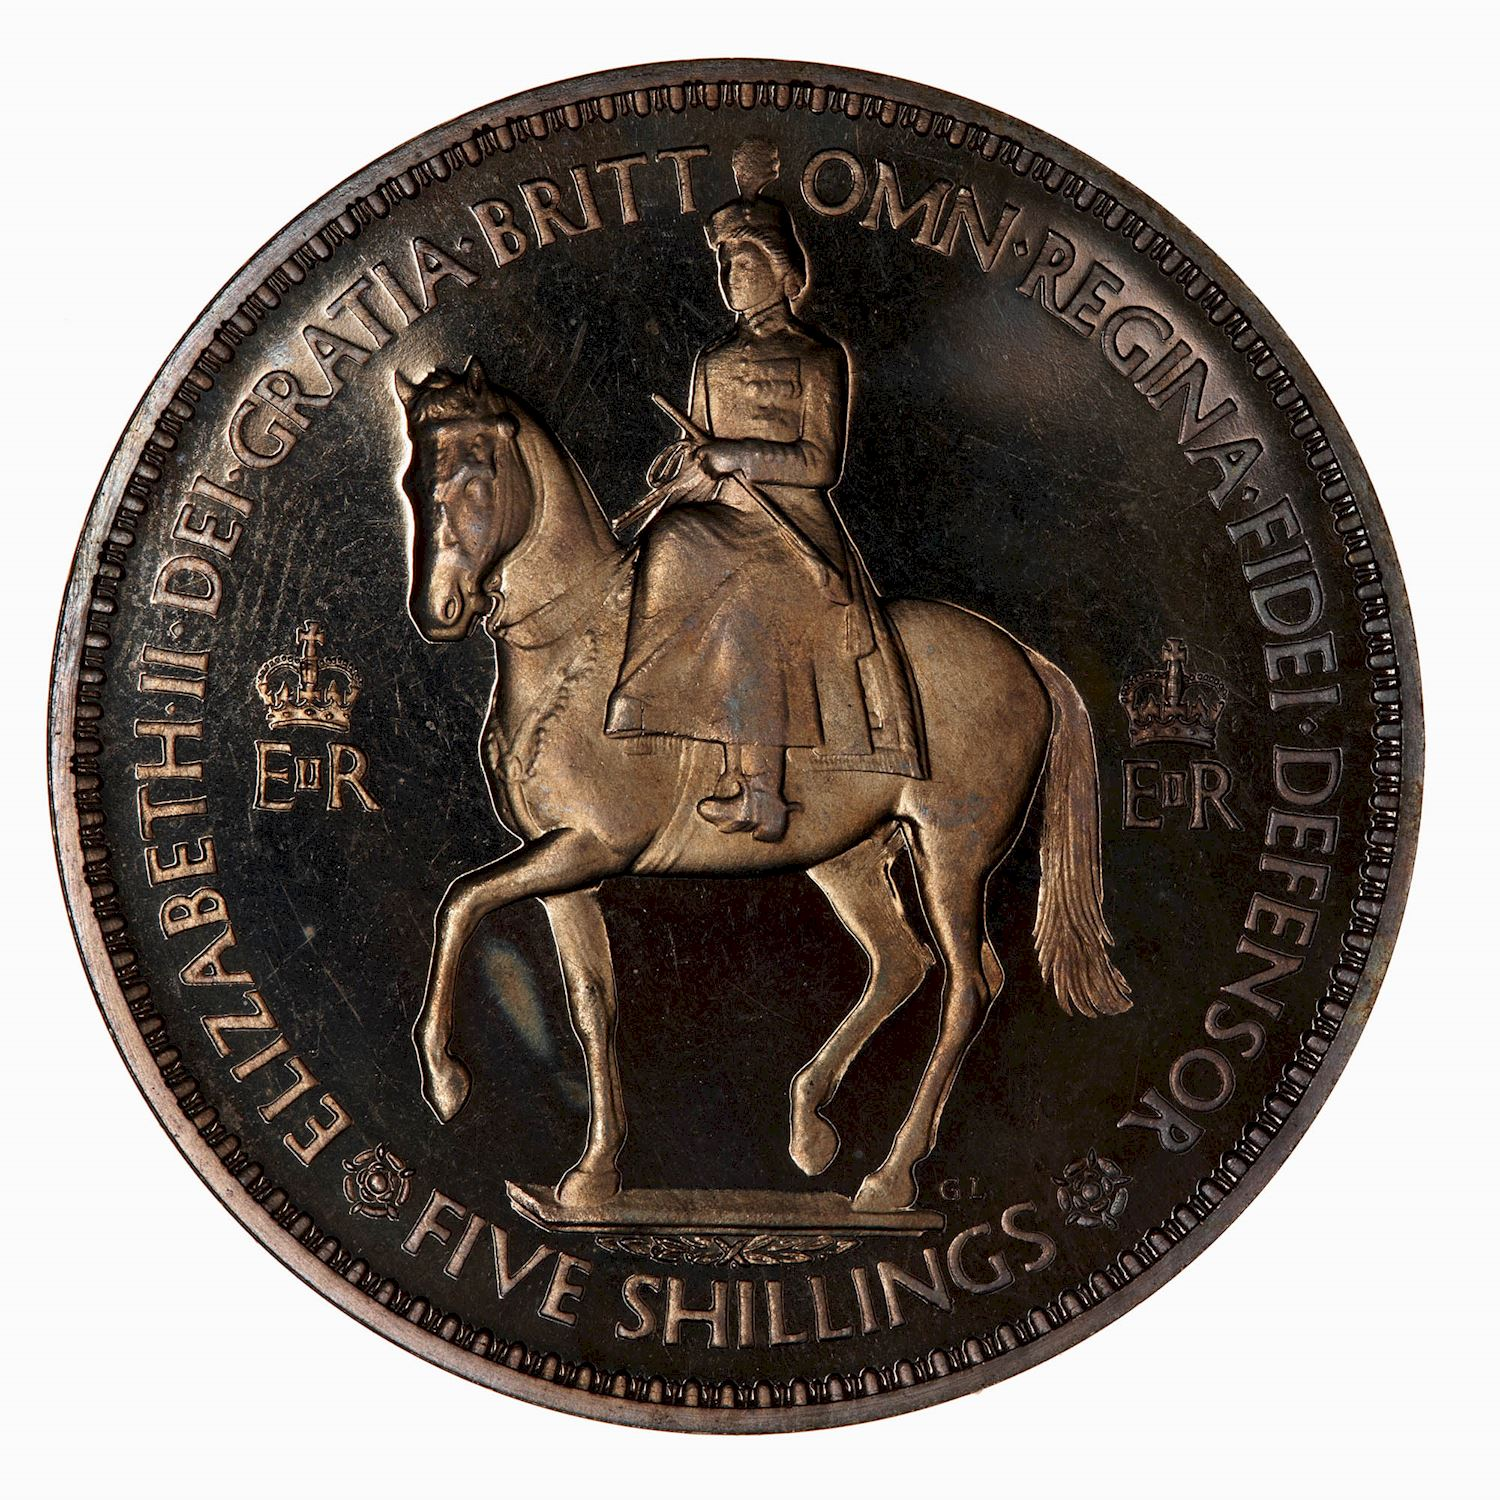 Crown: Photo Proof Coin - Crown, Coronation of Queen Elizabeth II, Great Britain, 1953